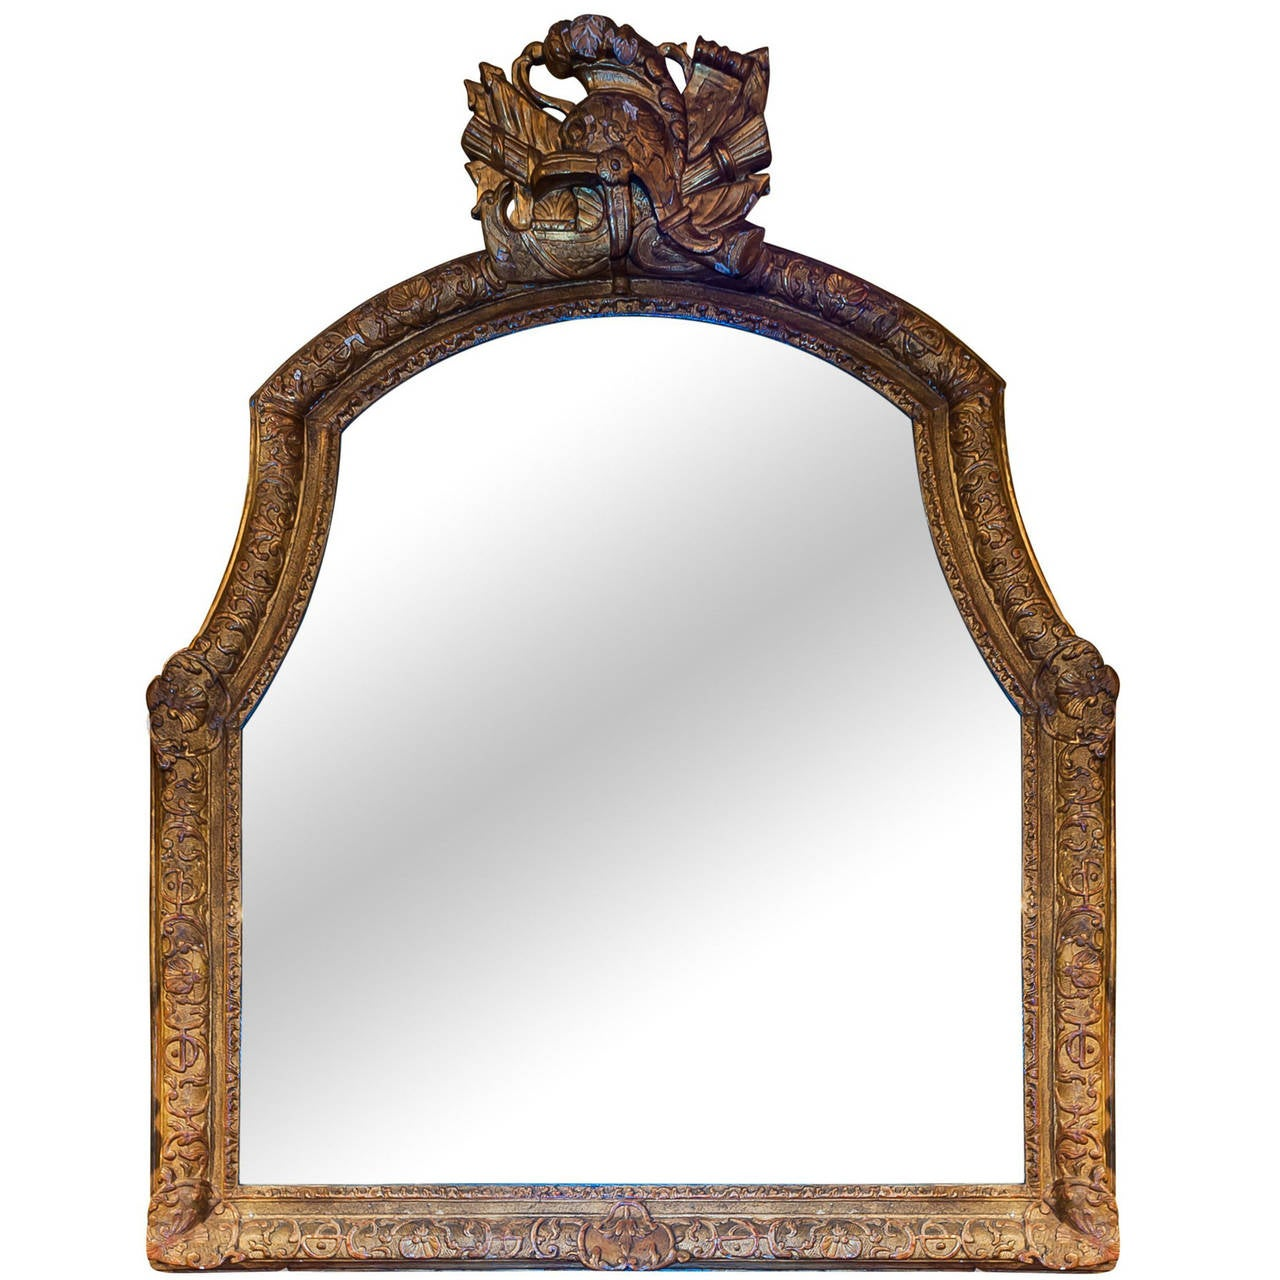 art deco period baroque style large mantel mirror in painted gesso for sale at 1stdibs. Black Bedroom Furniture Sets. Home Design Ideas